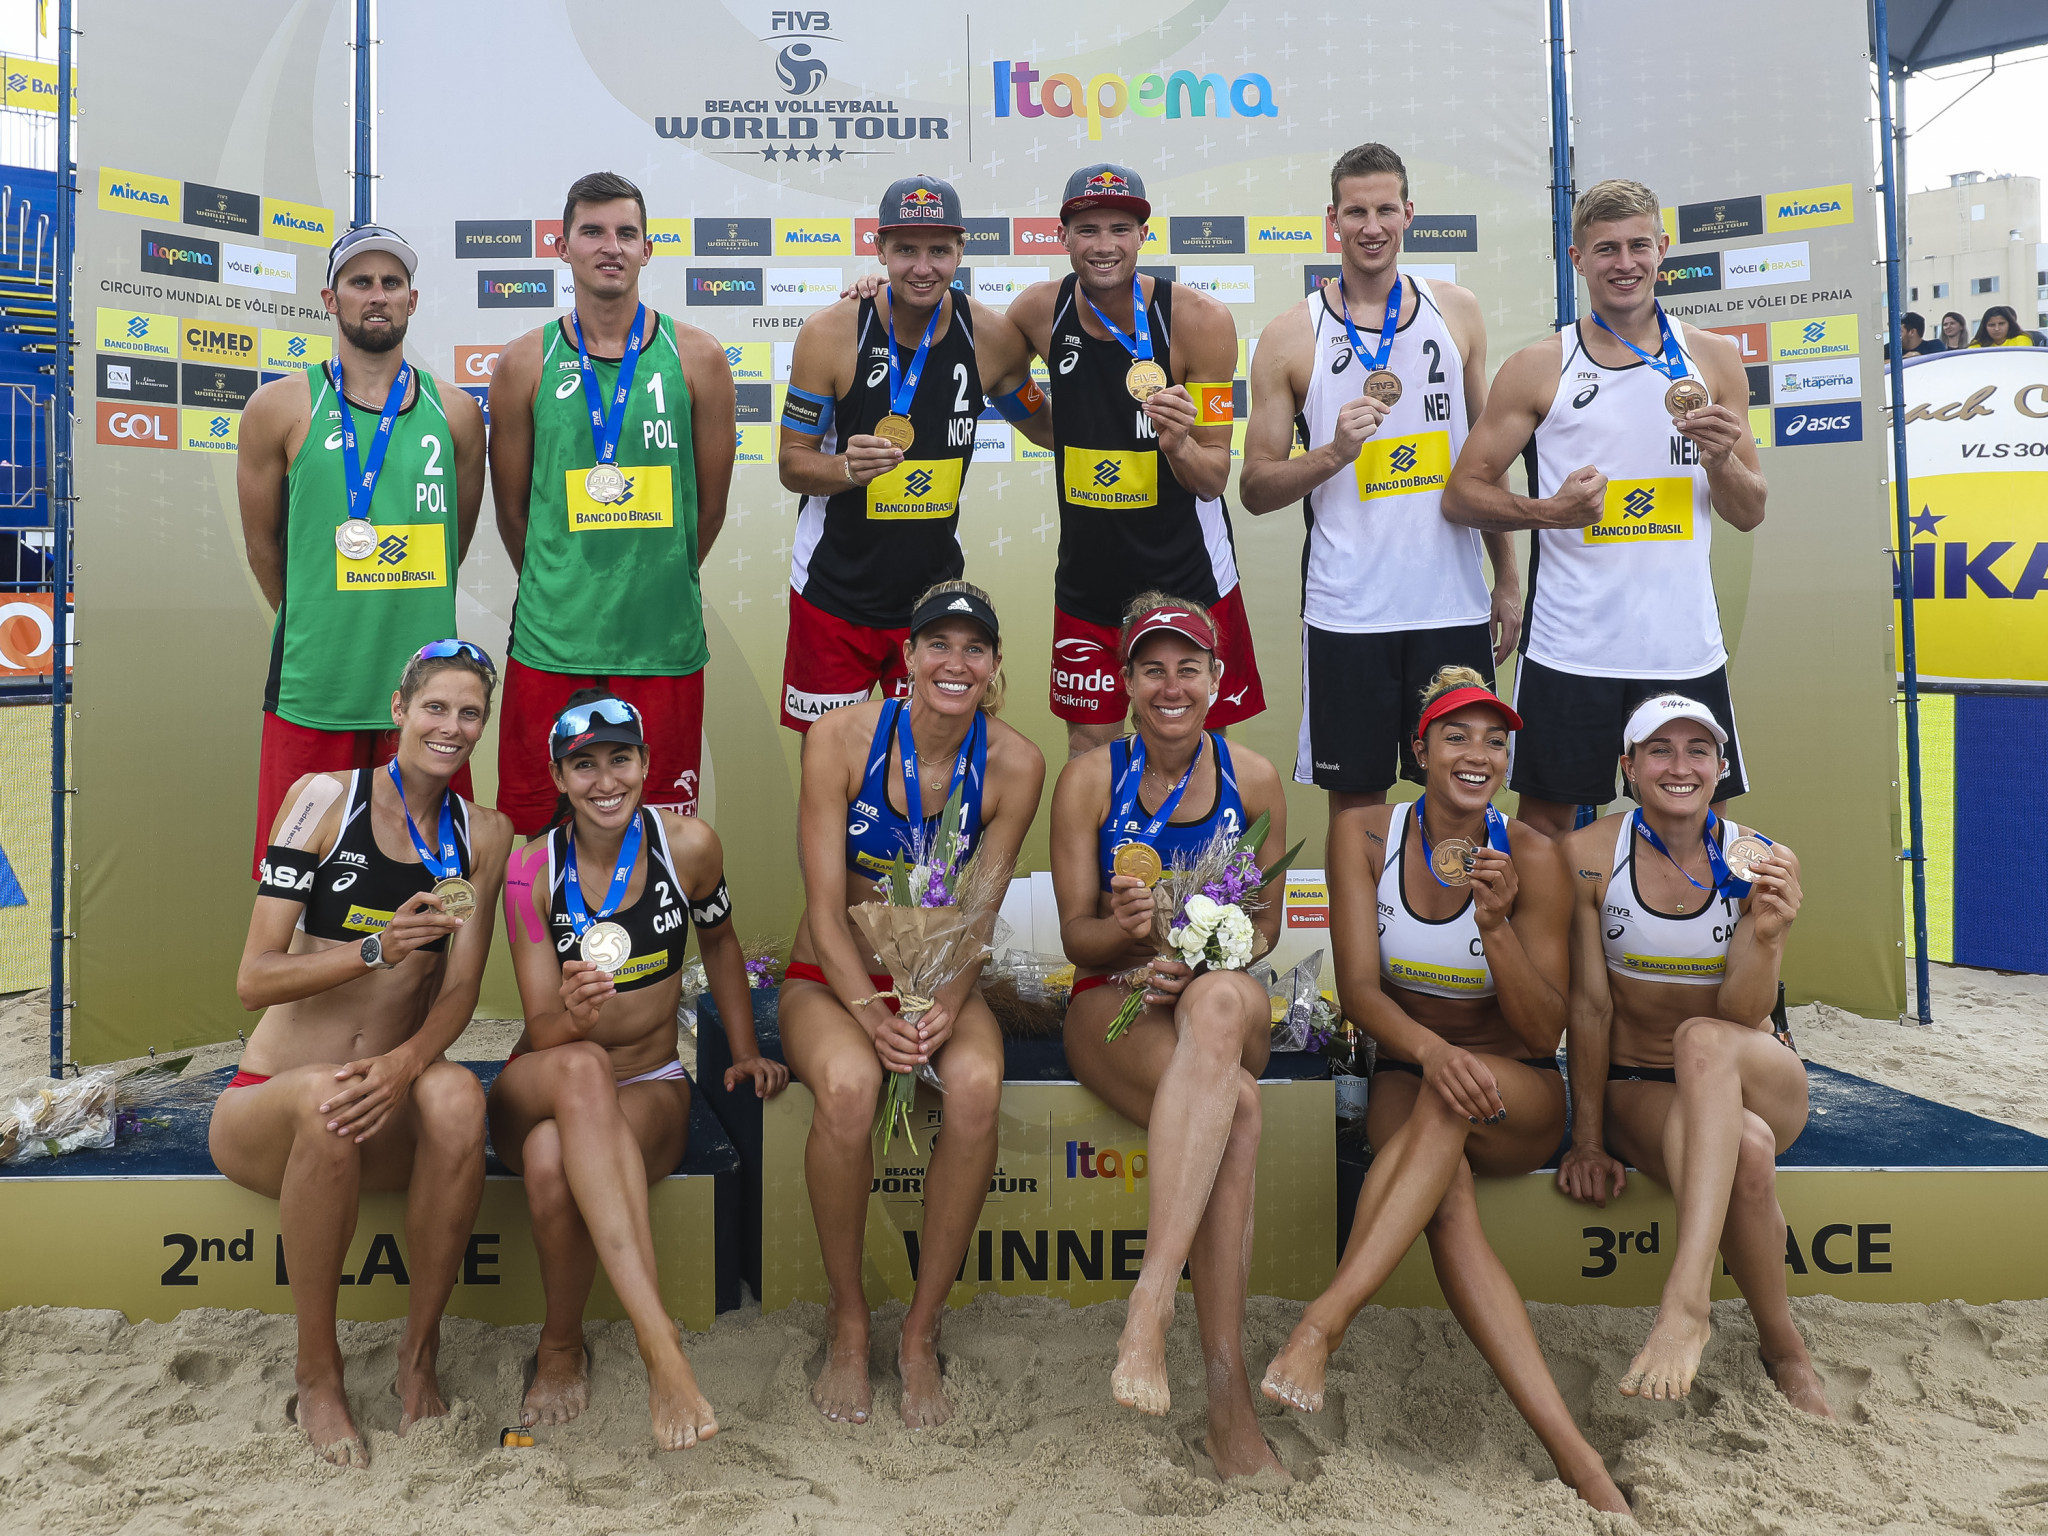 Now Olympic champions Anders Mol and Christian Sørum, centre back, and Alix Klineman and April Ross, centre front, won at the last FIVB Beach Volleyball World Tour event in Itapema in 2019 ©Getty Images